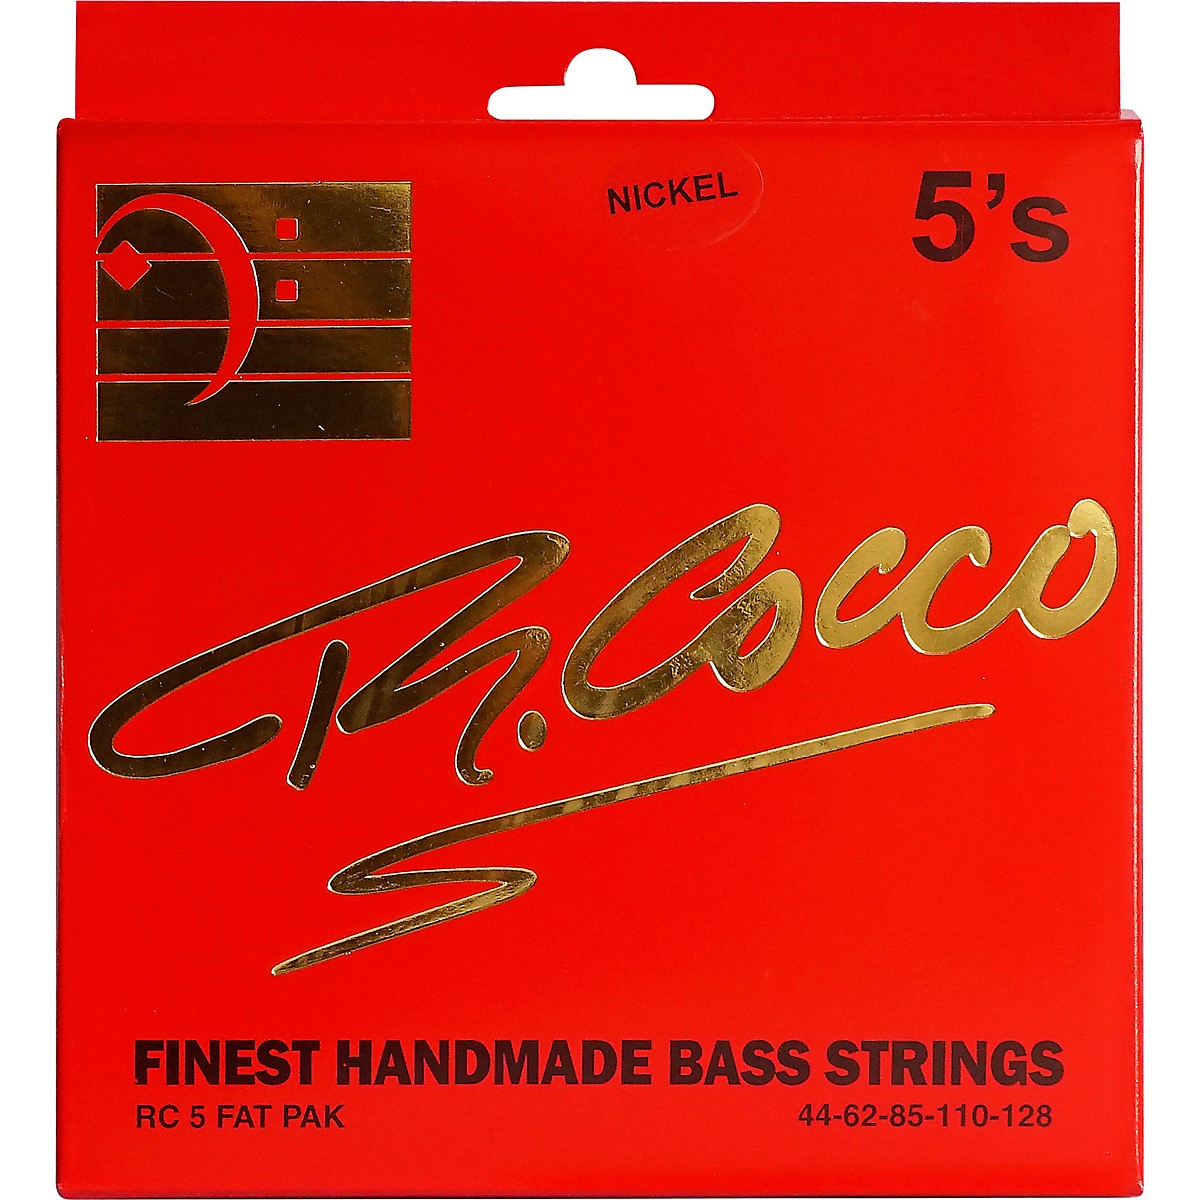 Richard Cocco RC5FATPN 5-String Nickel Electric Bass Guitar Strings